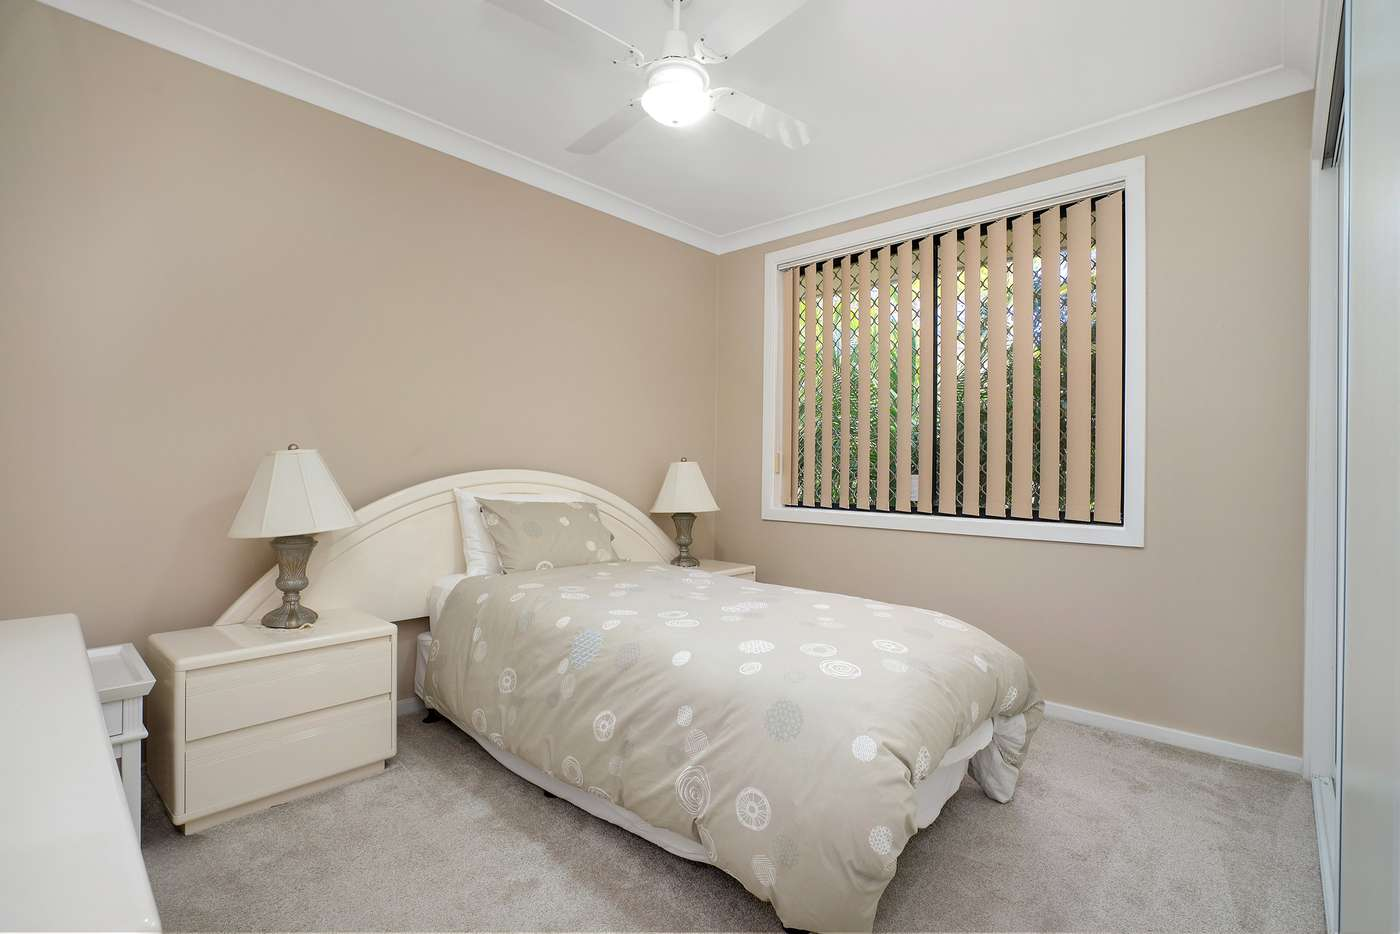 Fifth view of Homely villa listing, 3/46A Frith Street, Kahibah NSW 2290